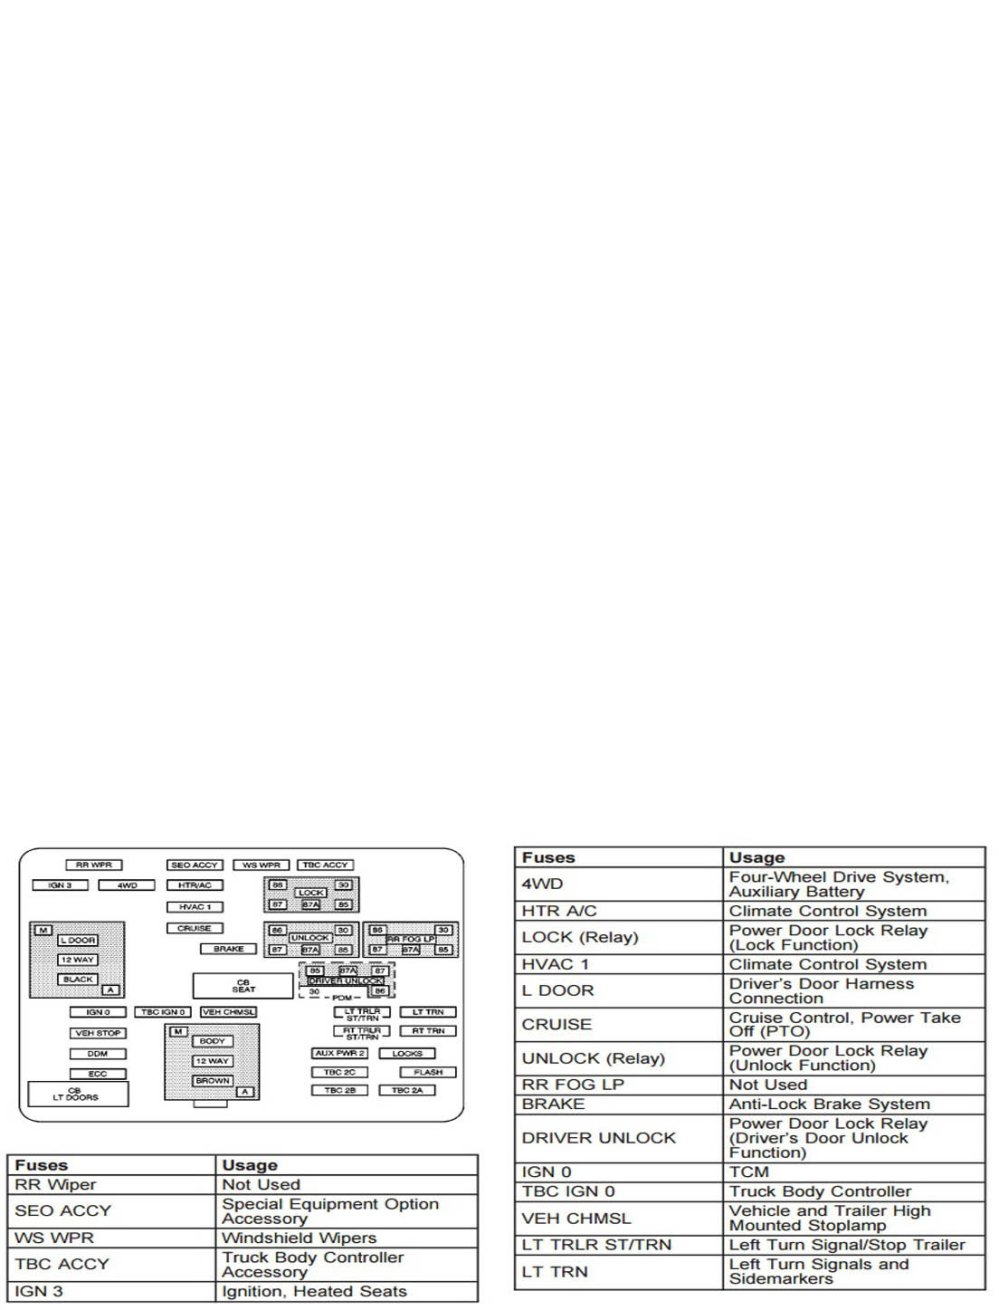 medium resolution of chevrolet silverado gmt800 1999 2006 fuse box diagram chevroletforum rh chevroletforum com 2000 chevy astro fuse